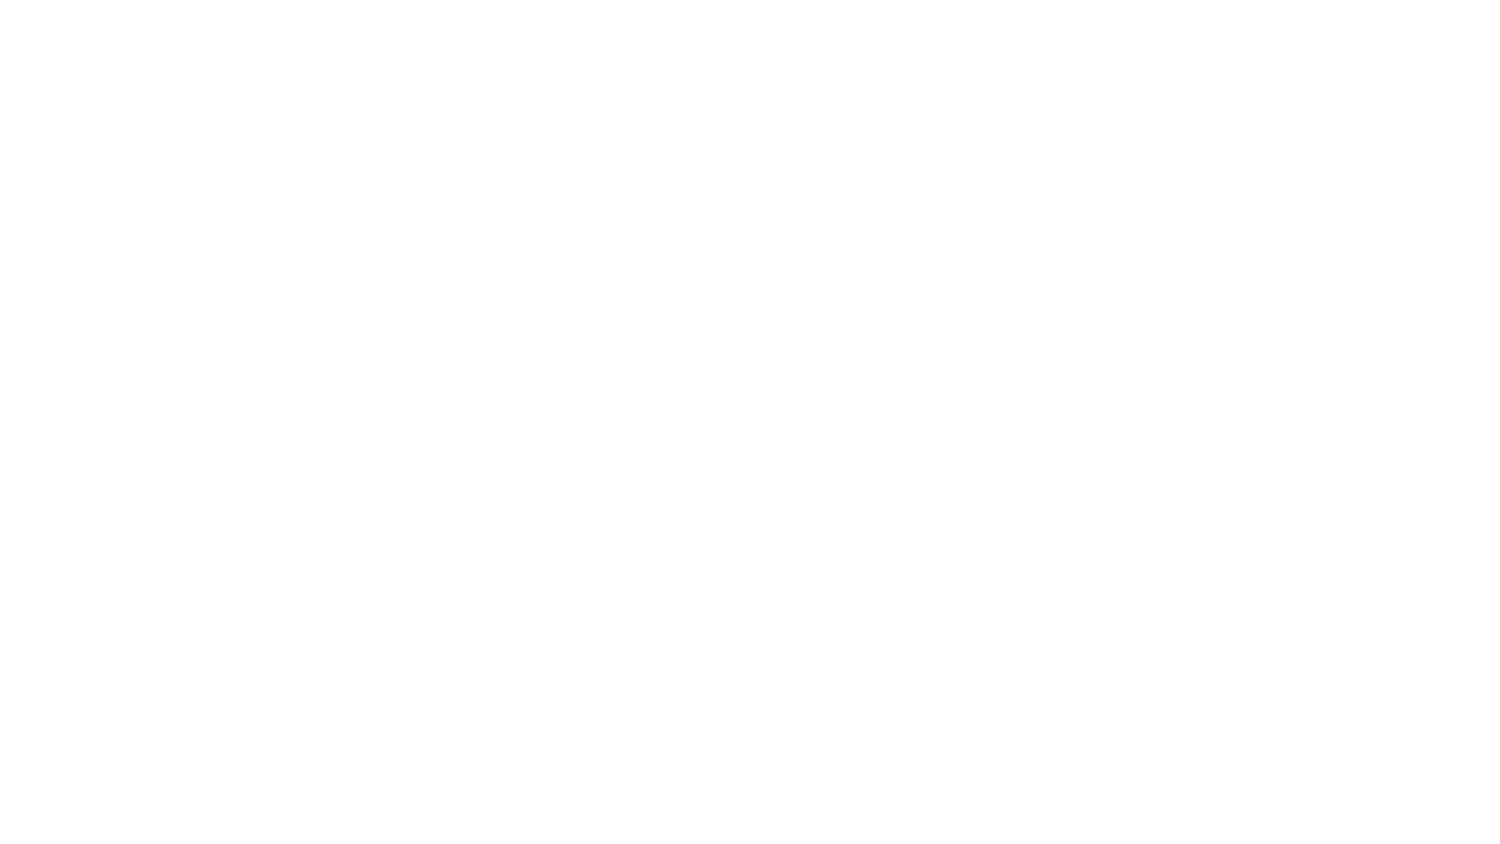 Dayspring Church